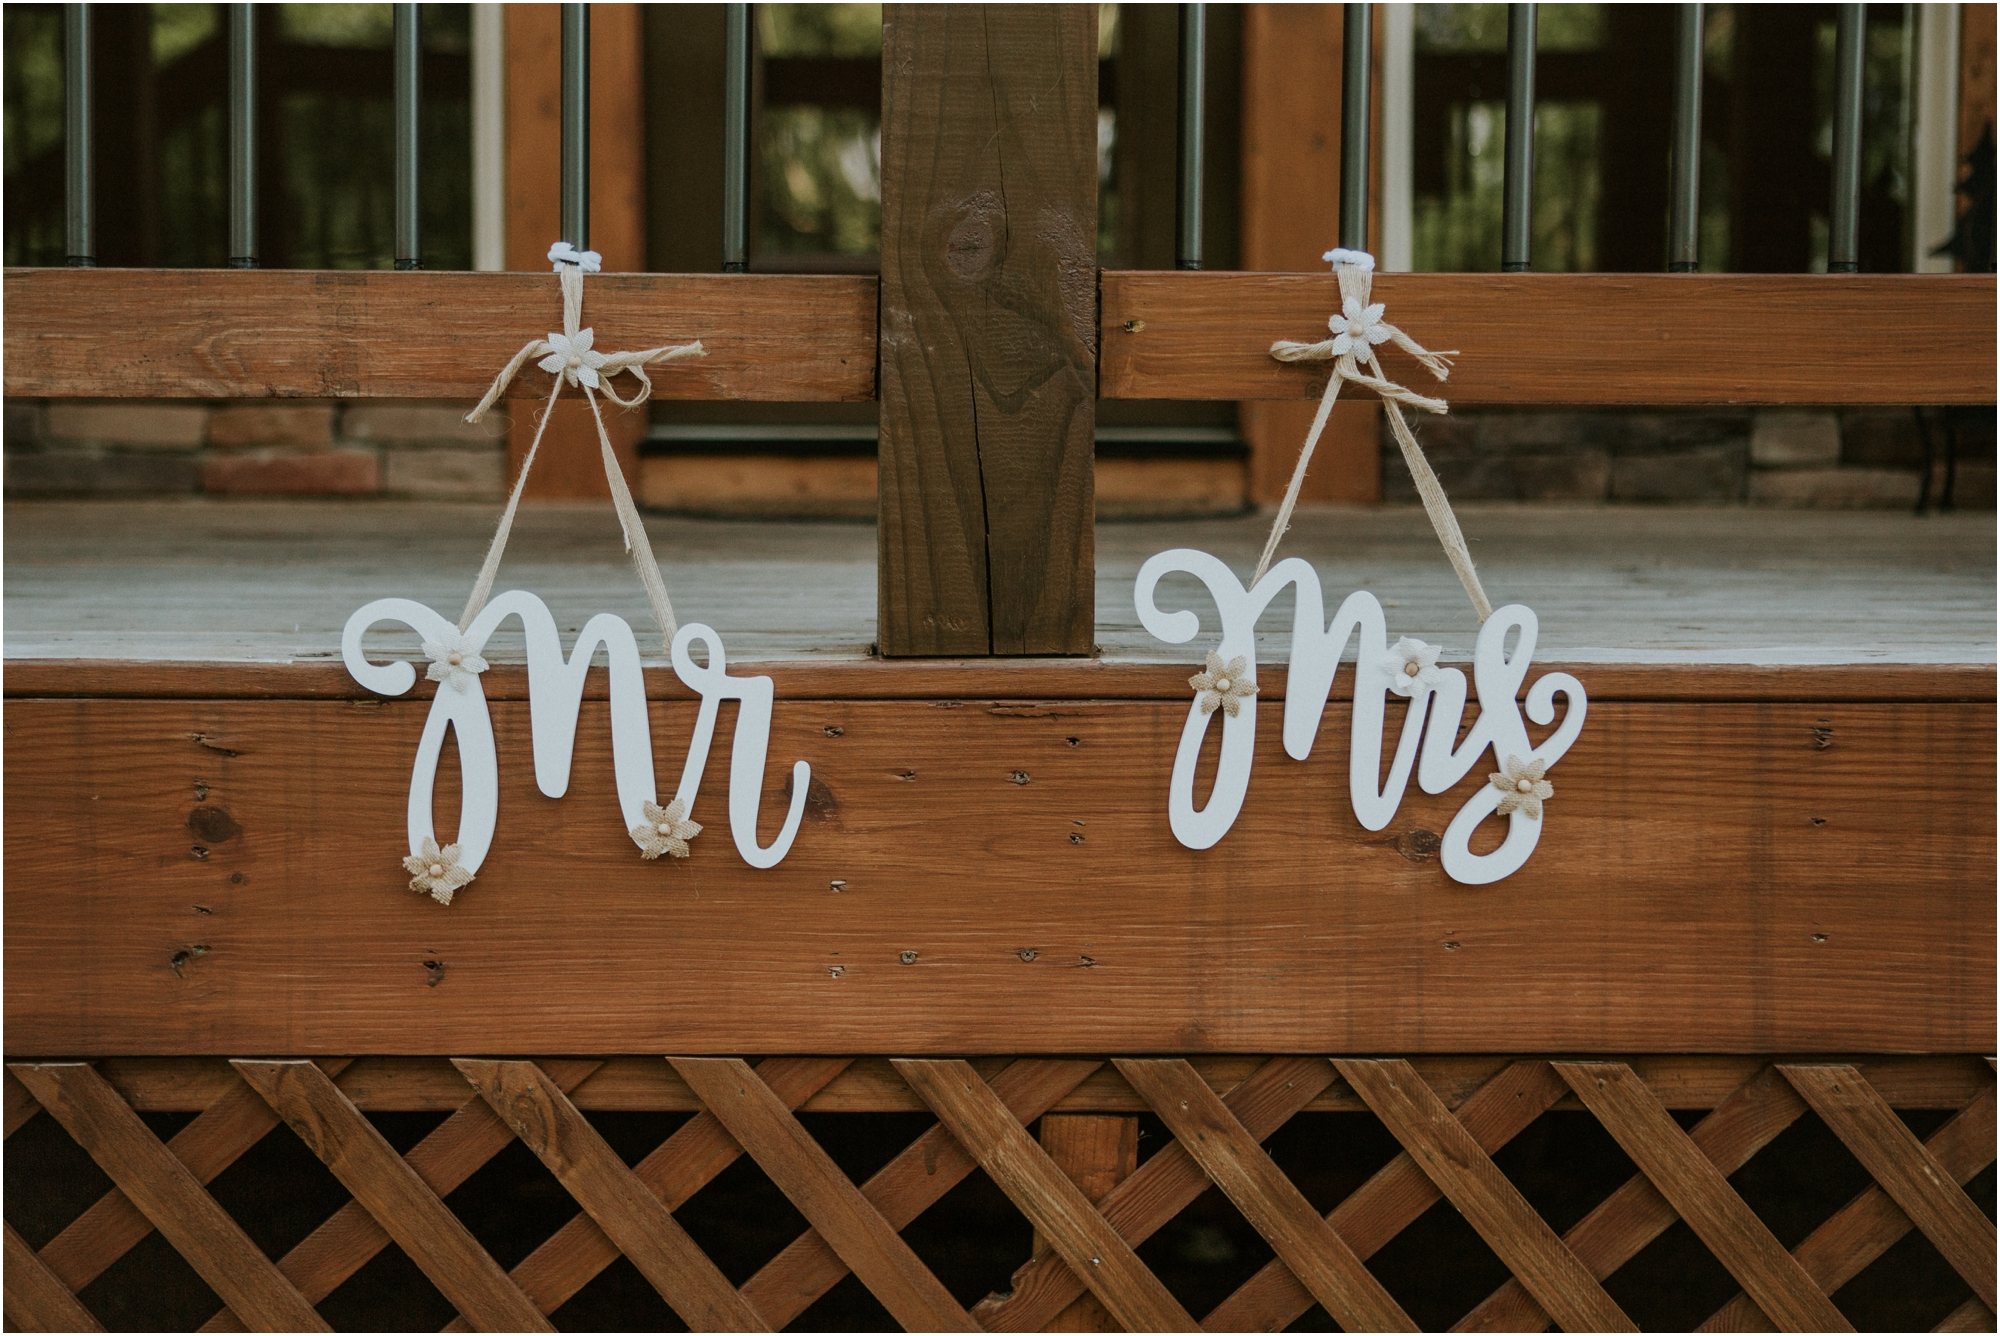 cabin-parkside-resort-the-magnolia-venue-tennessee-mountain-views-intimate-wedding_0009.jpg